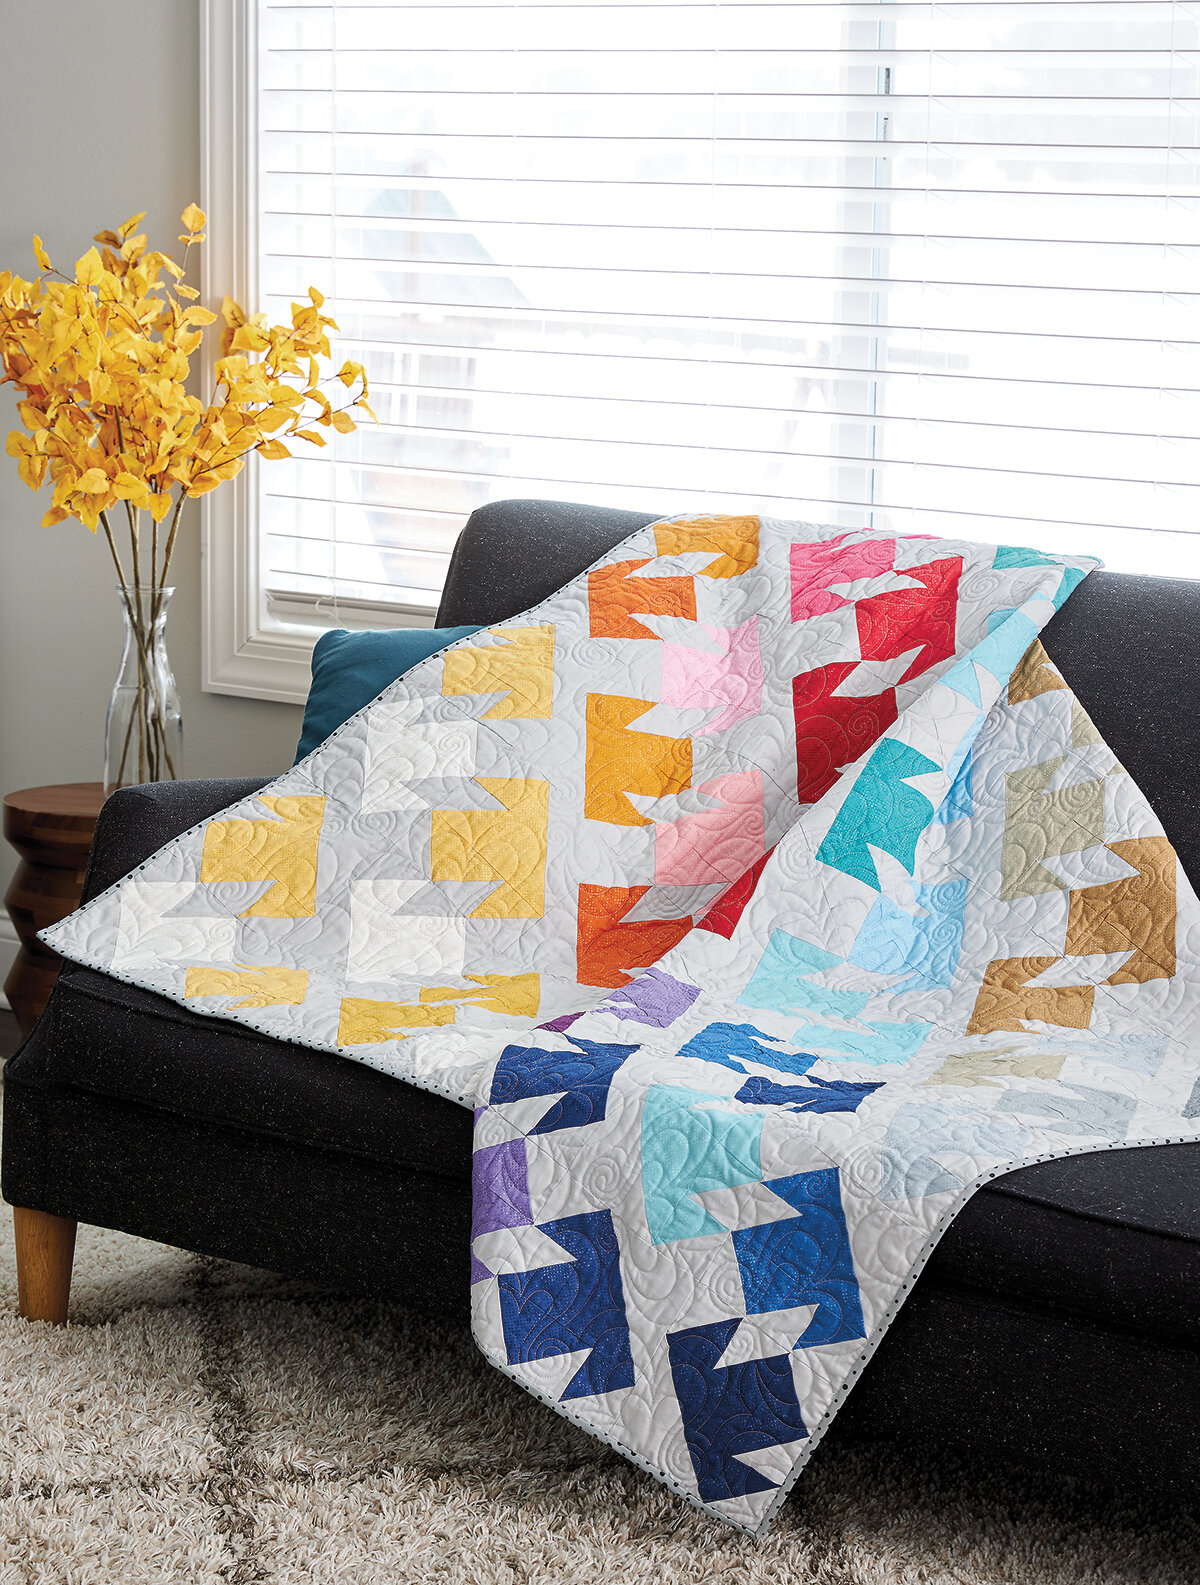 The All My Ts quilt sewn by Brigitte Heitland of Zen Chic for Martingale's book, Moda All Stars: Mix It Up!